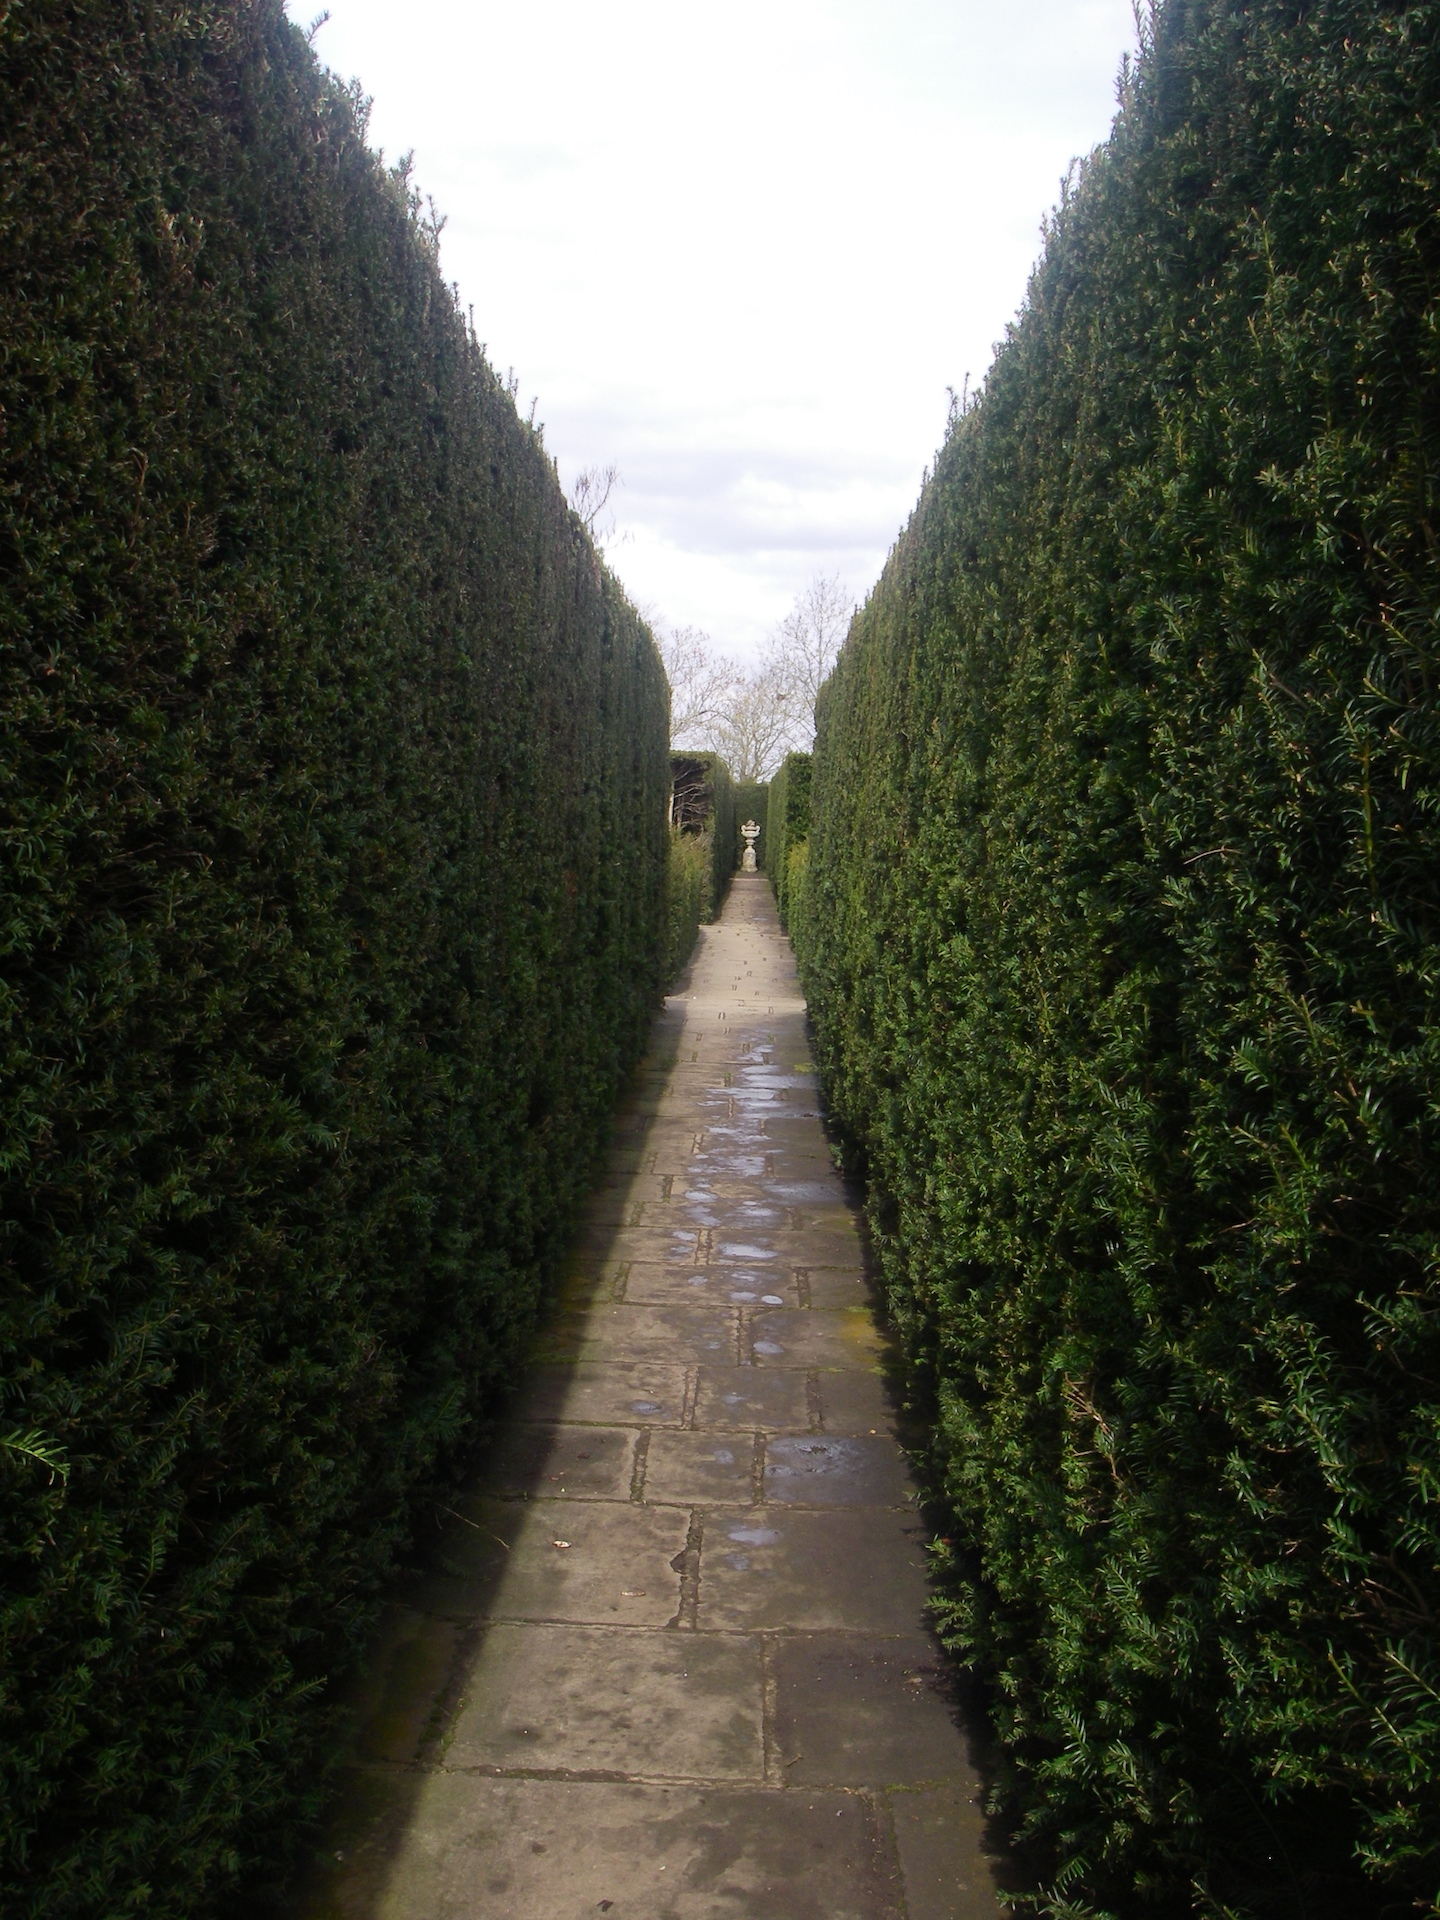 Yew Hedge focal point. Classic English Garden Design.